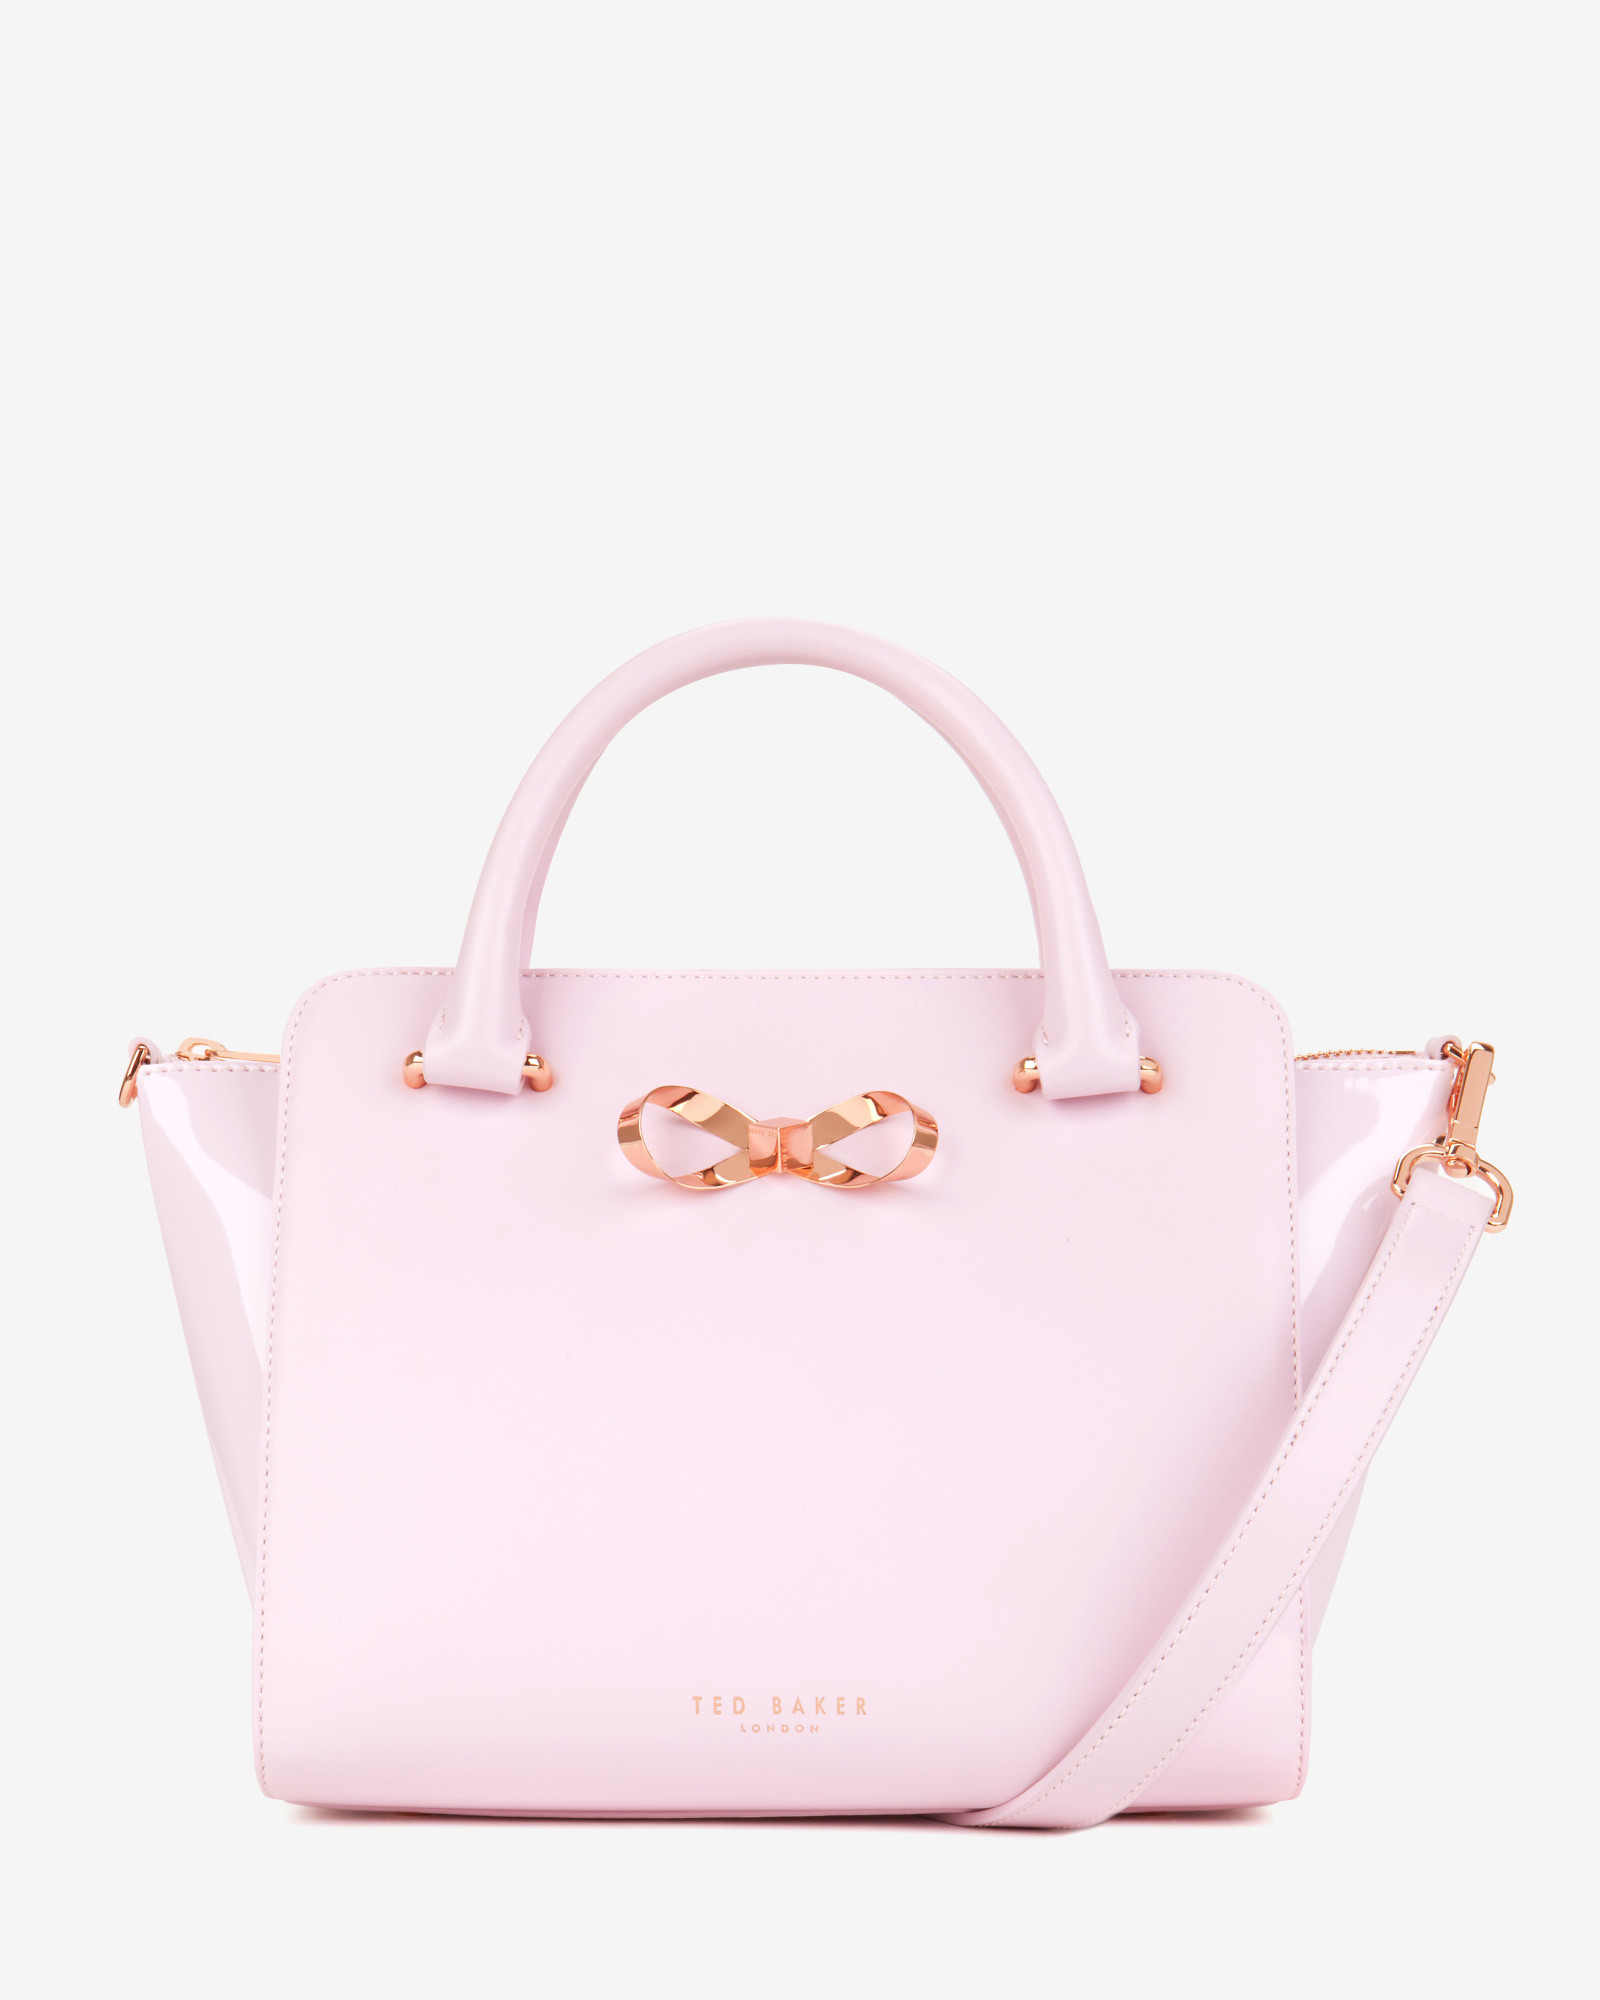 5bcd920098df Ted Baker Loop Bow Leather Tote Bag in Pink - Lyst